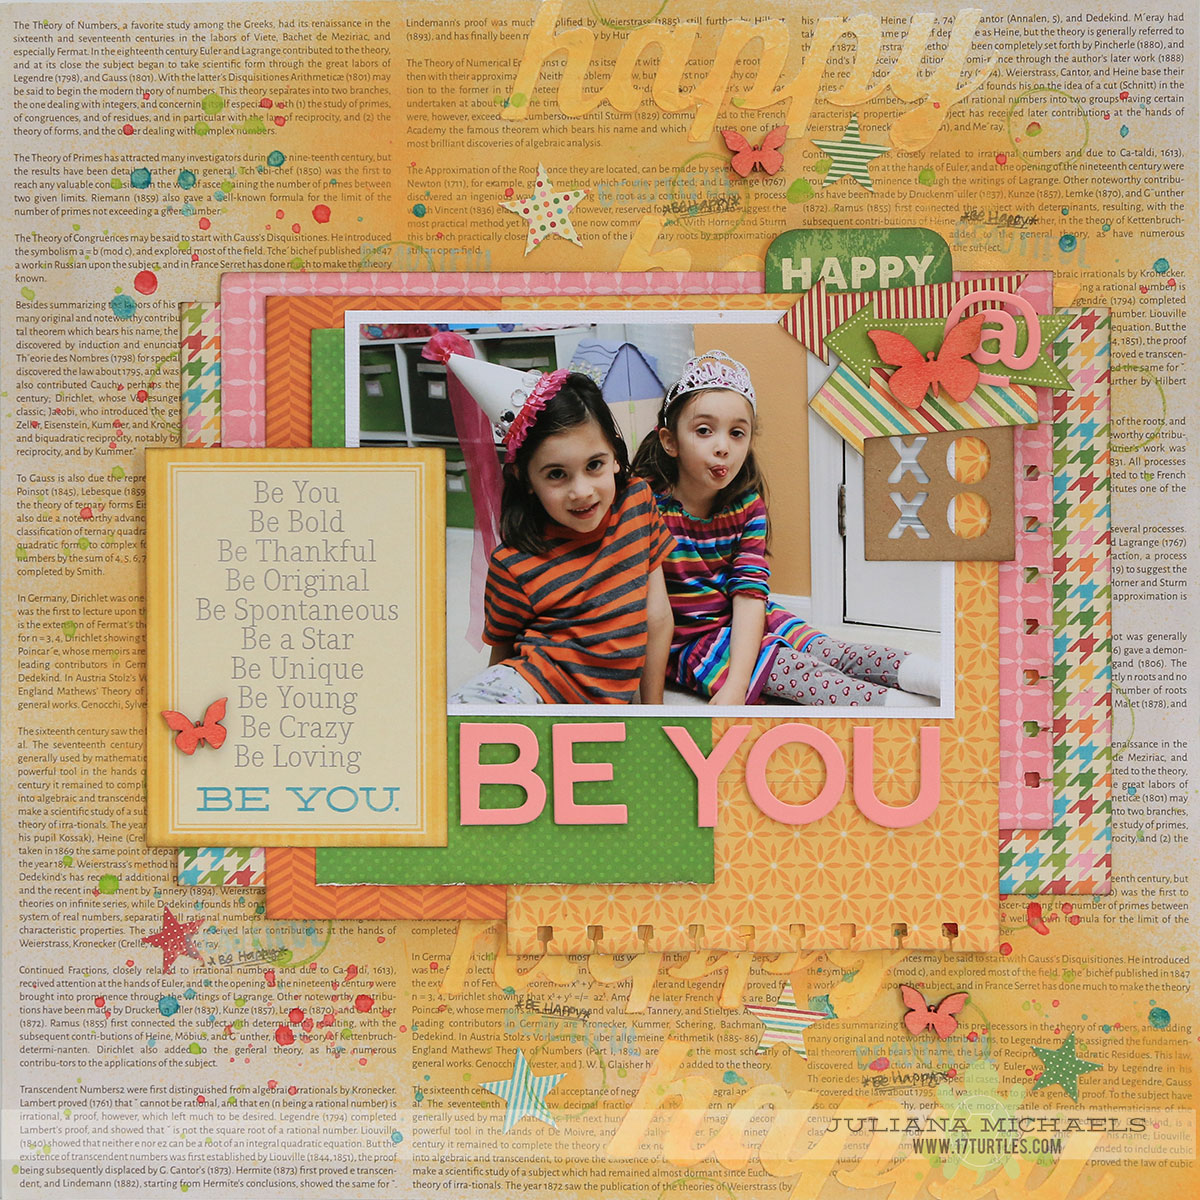 Be You Happy Scrapbook Page by Juliana Michaels created for the Paper Issues Online Crop using stencils, mixed media and Jillibean Soup.